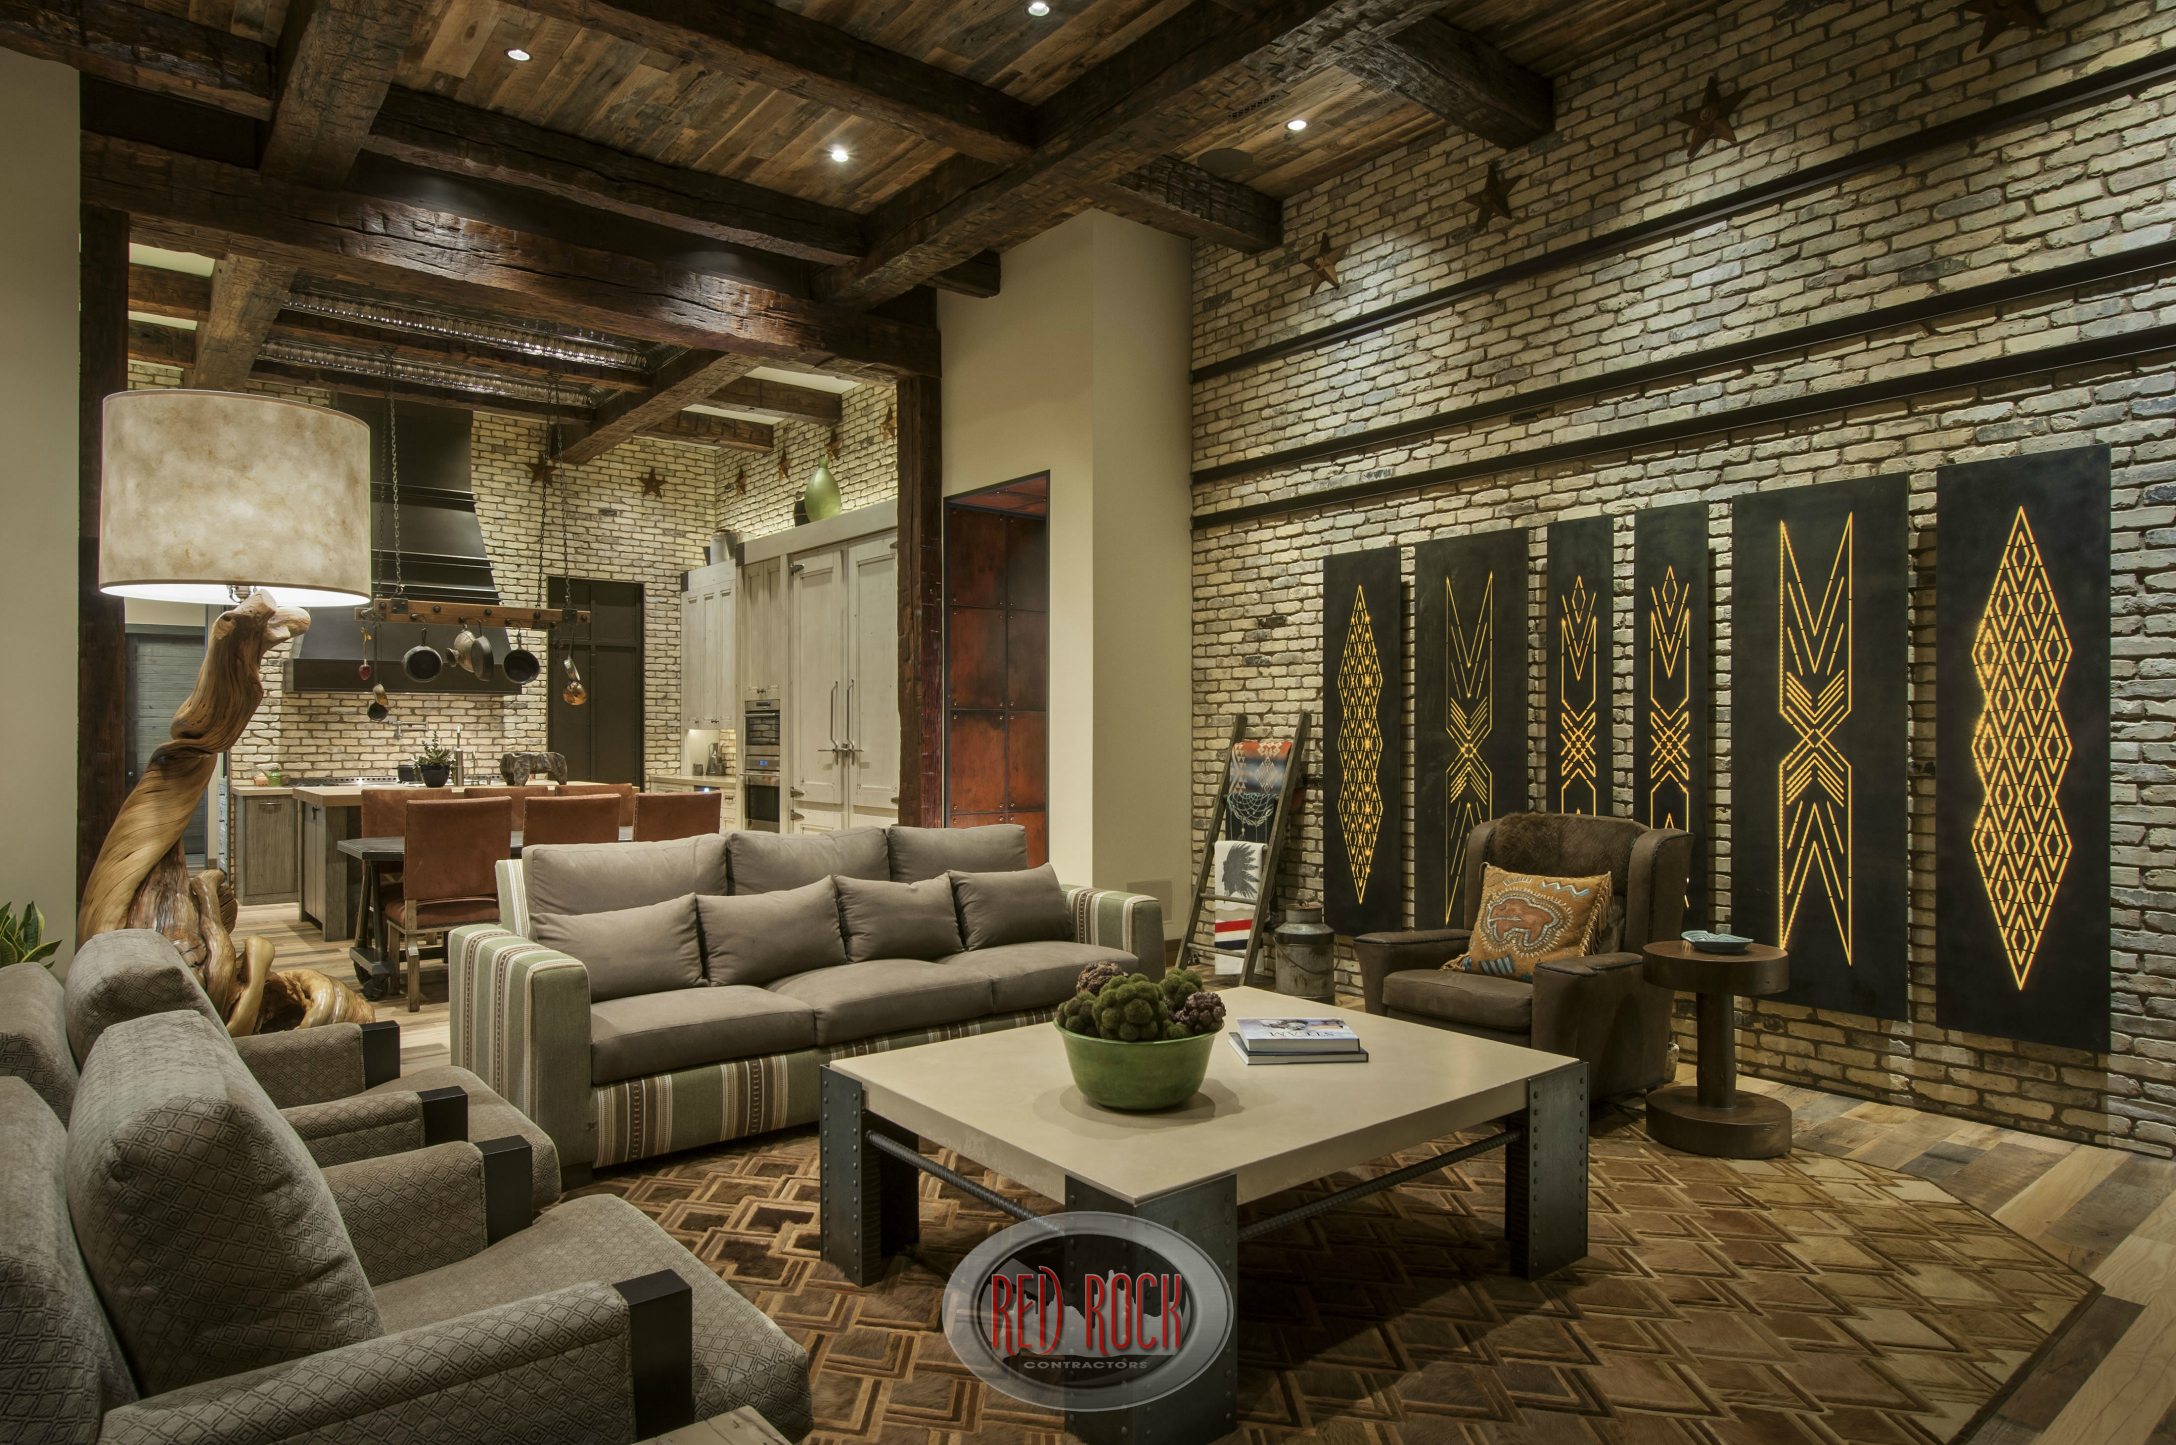 31 custom jaw dropping rustic interior design ideas photos for Great room wall ideas